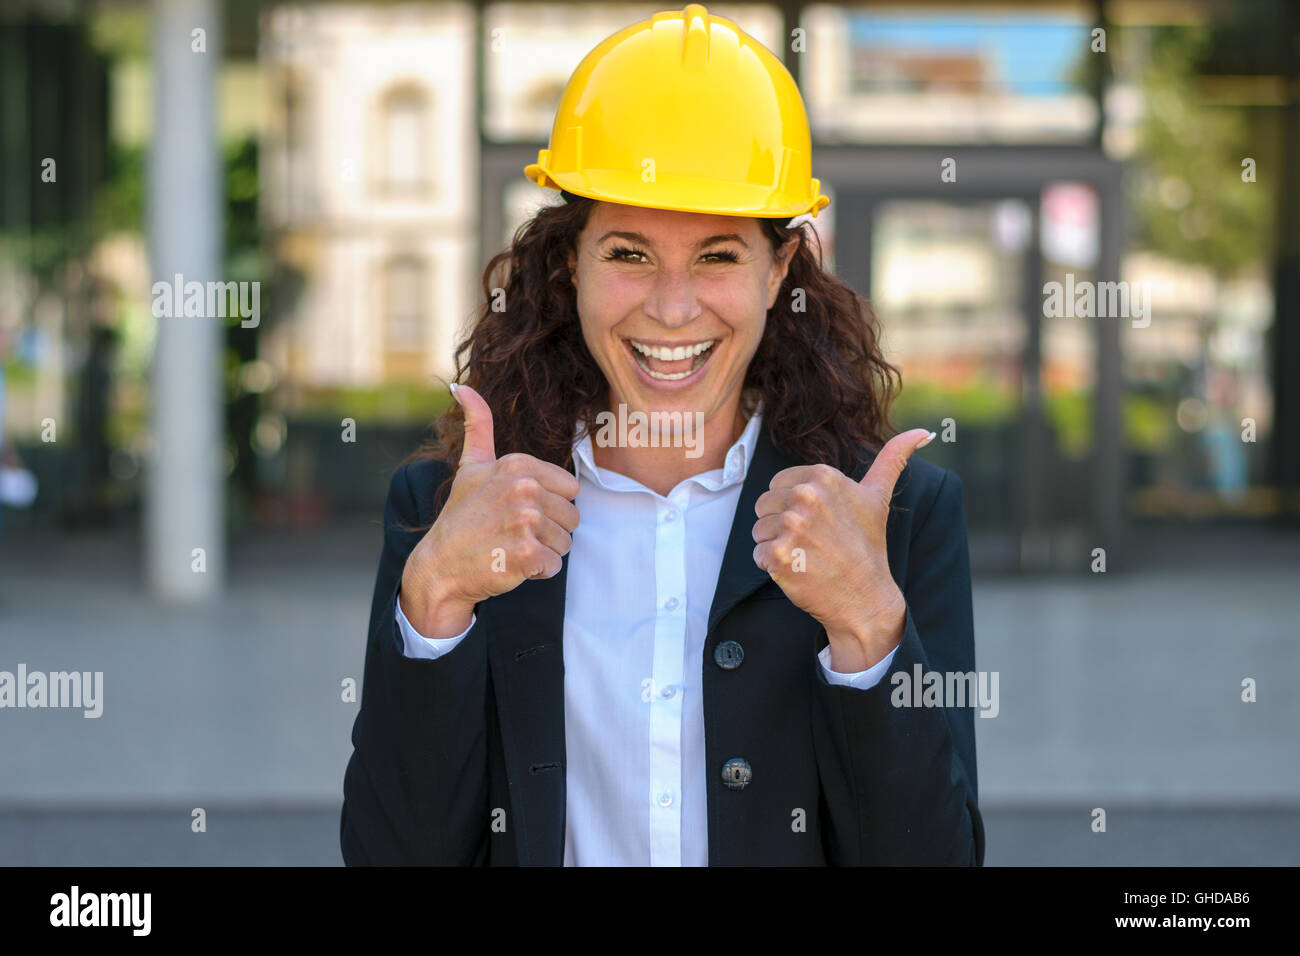 Motivated happy young female architect wearing a yellow hardhat giving a double thumbs up with a beaming smile to Stock Photo